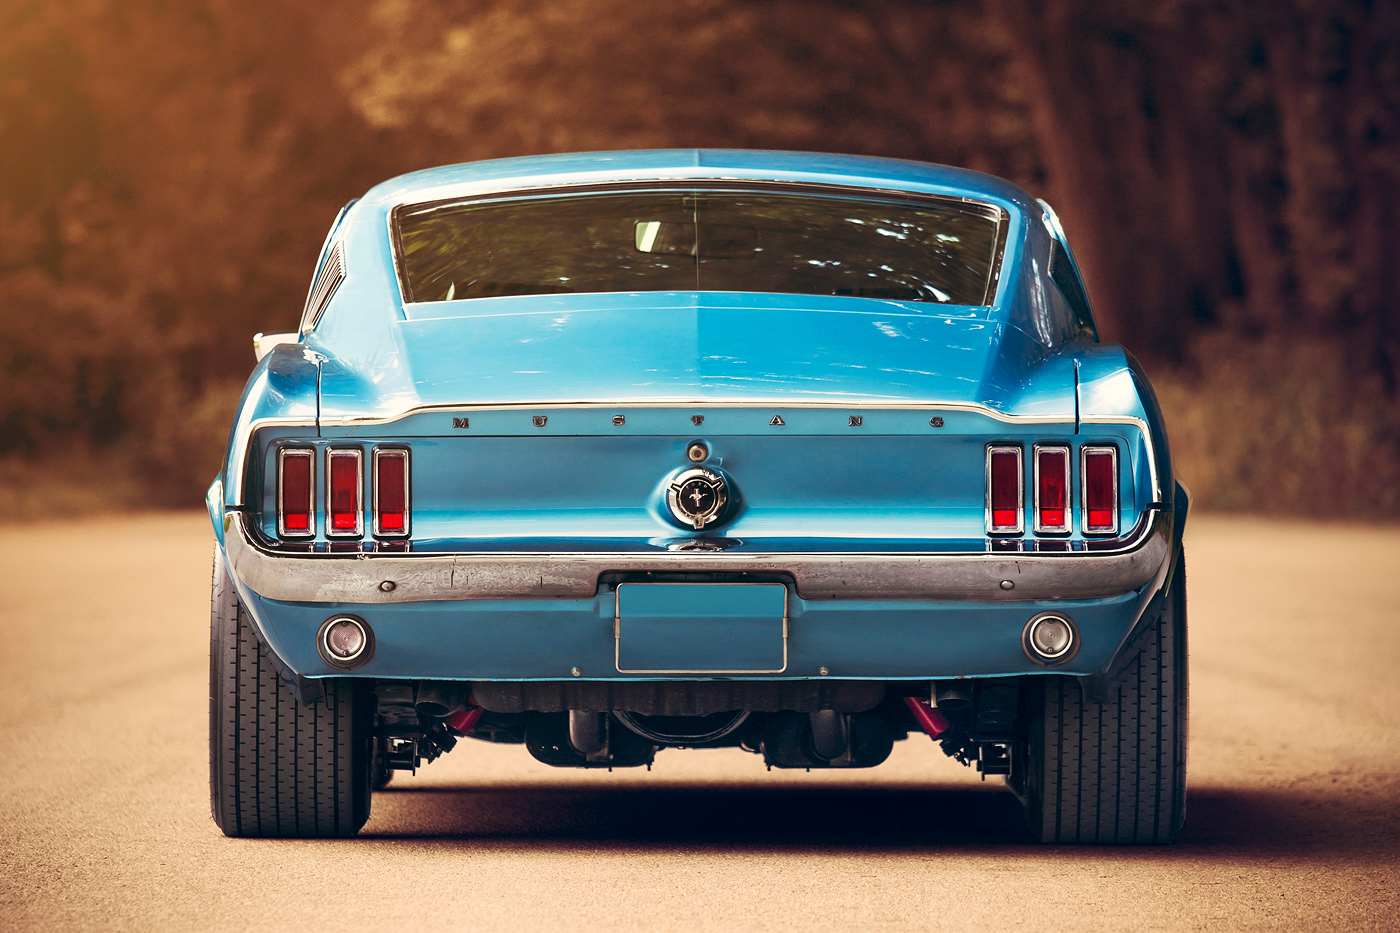 http://gerlingracing.com/wp-content/uploads/2015/01/projects-67-Ford-mustang-fastback-1967_16.jpg